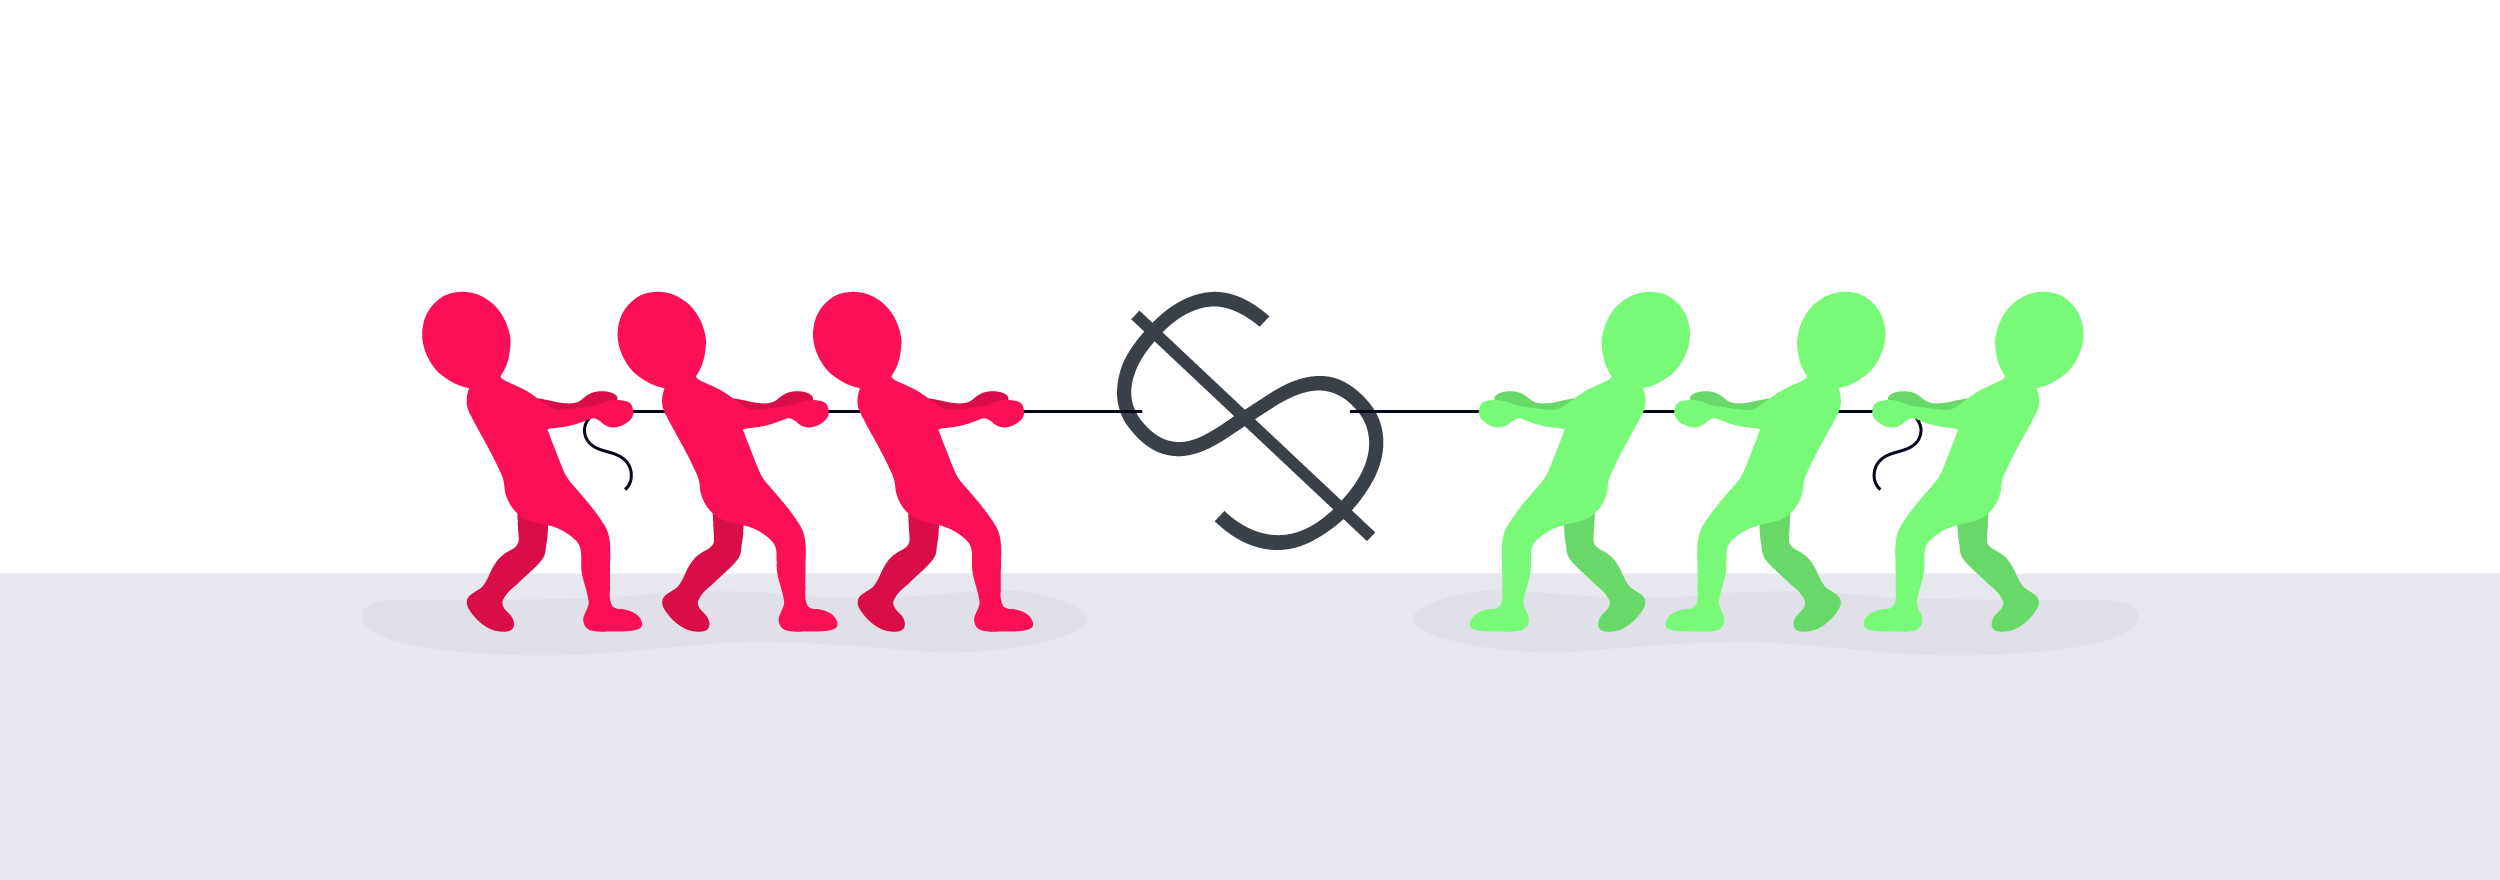 How to Align Your Marketing and Sales Teams for Exponential B2B Business Growth [Webinar Recap]